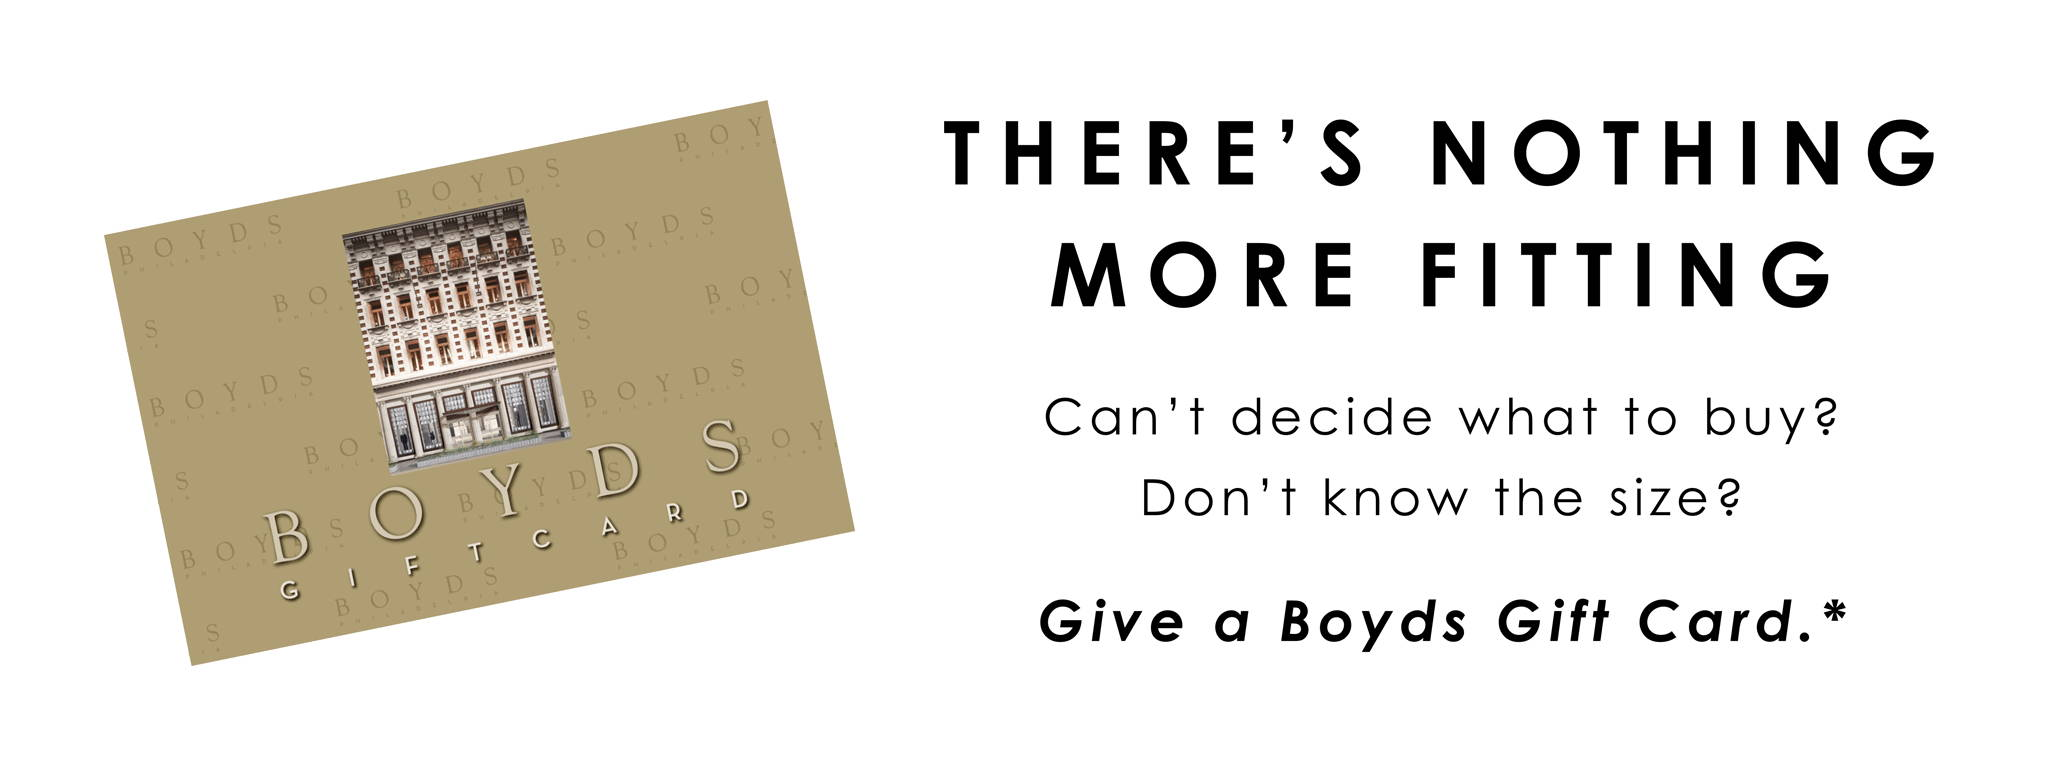 Taupe gift card with Boyds exterior and logo.